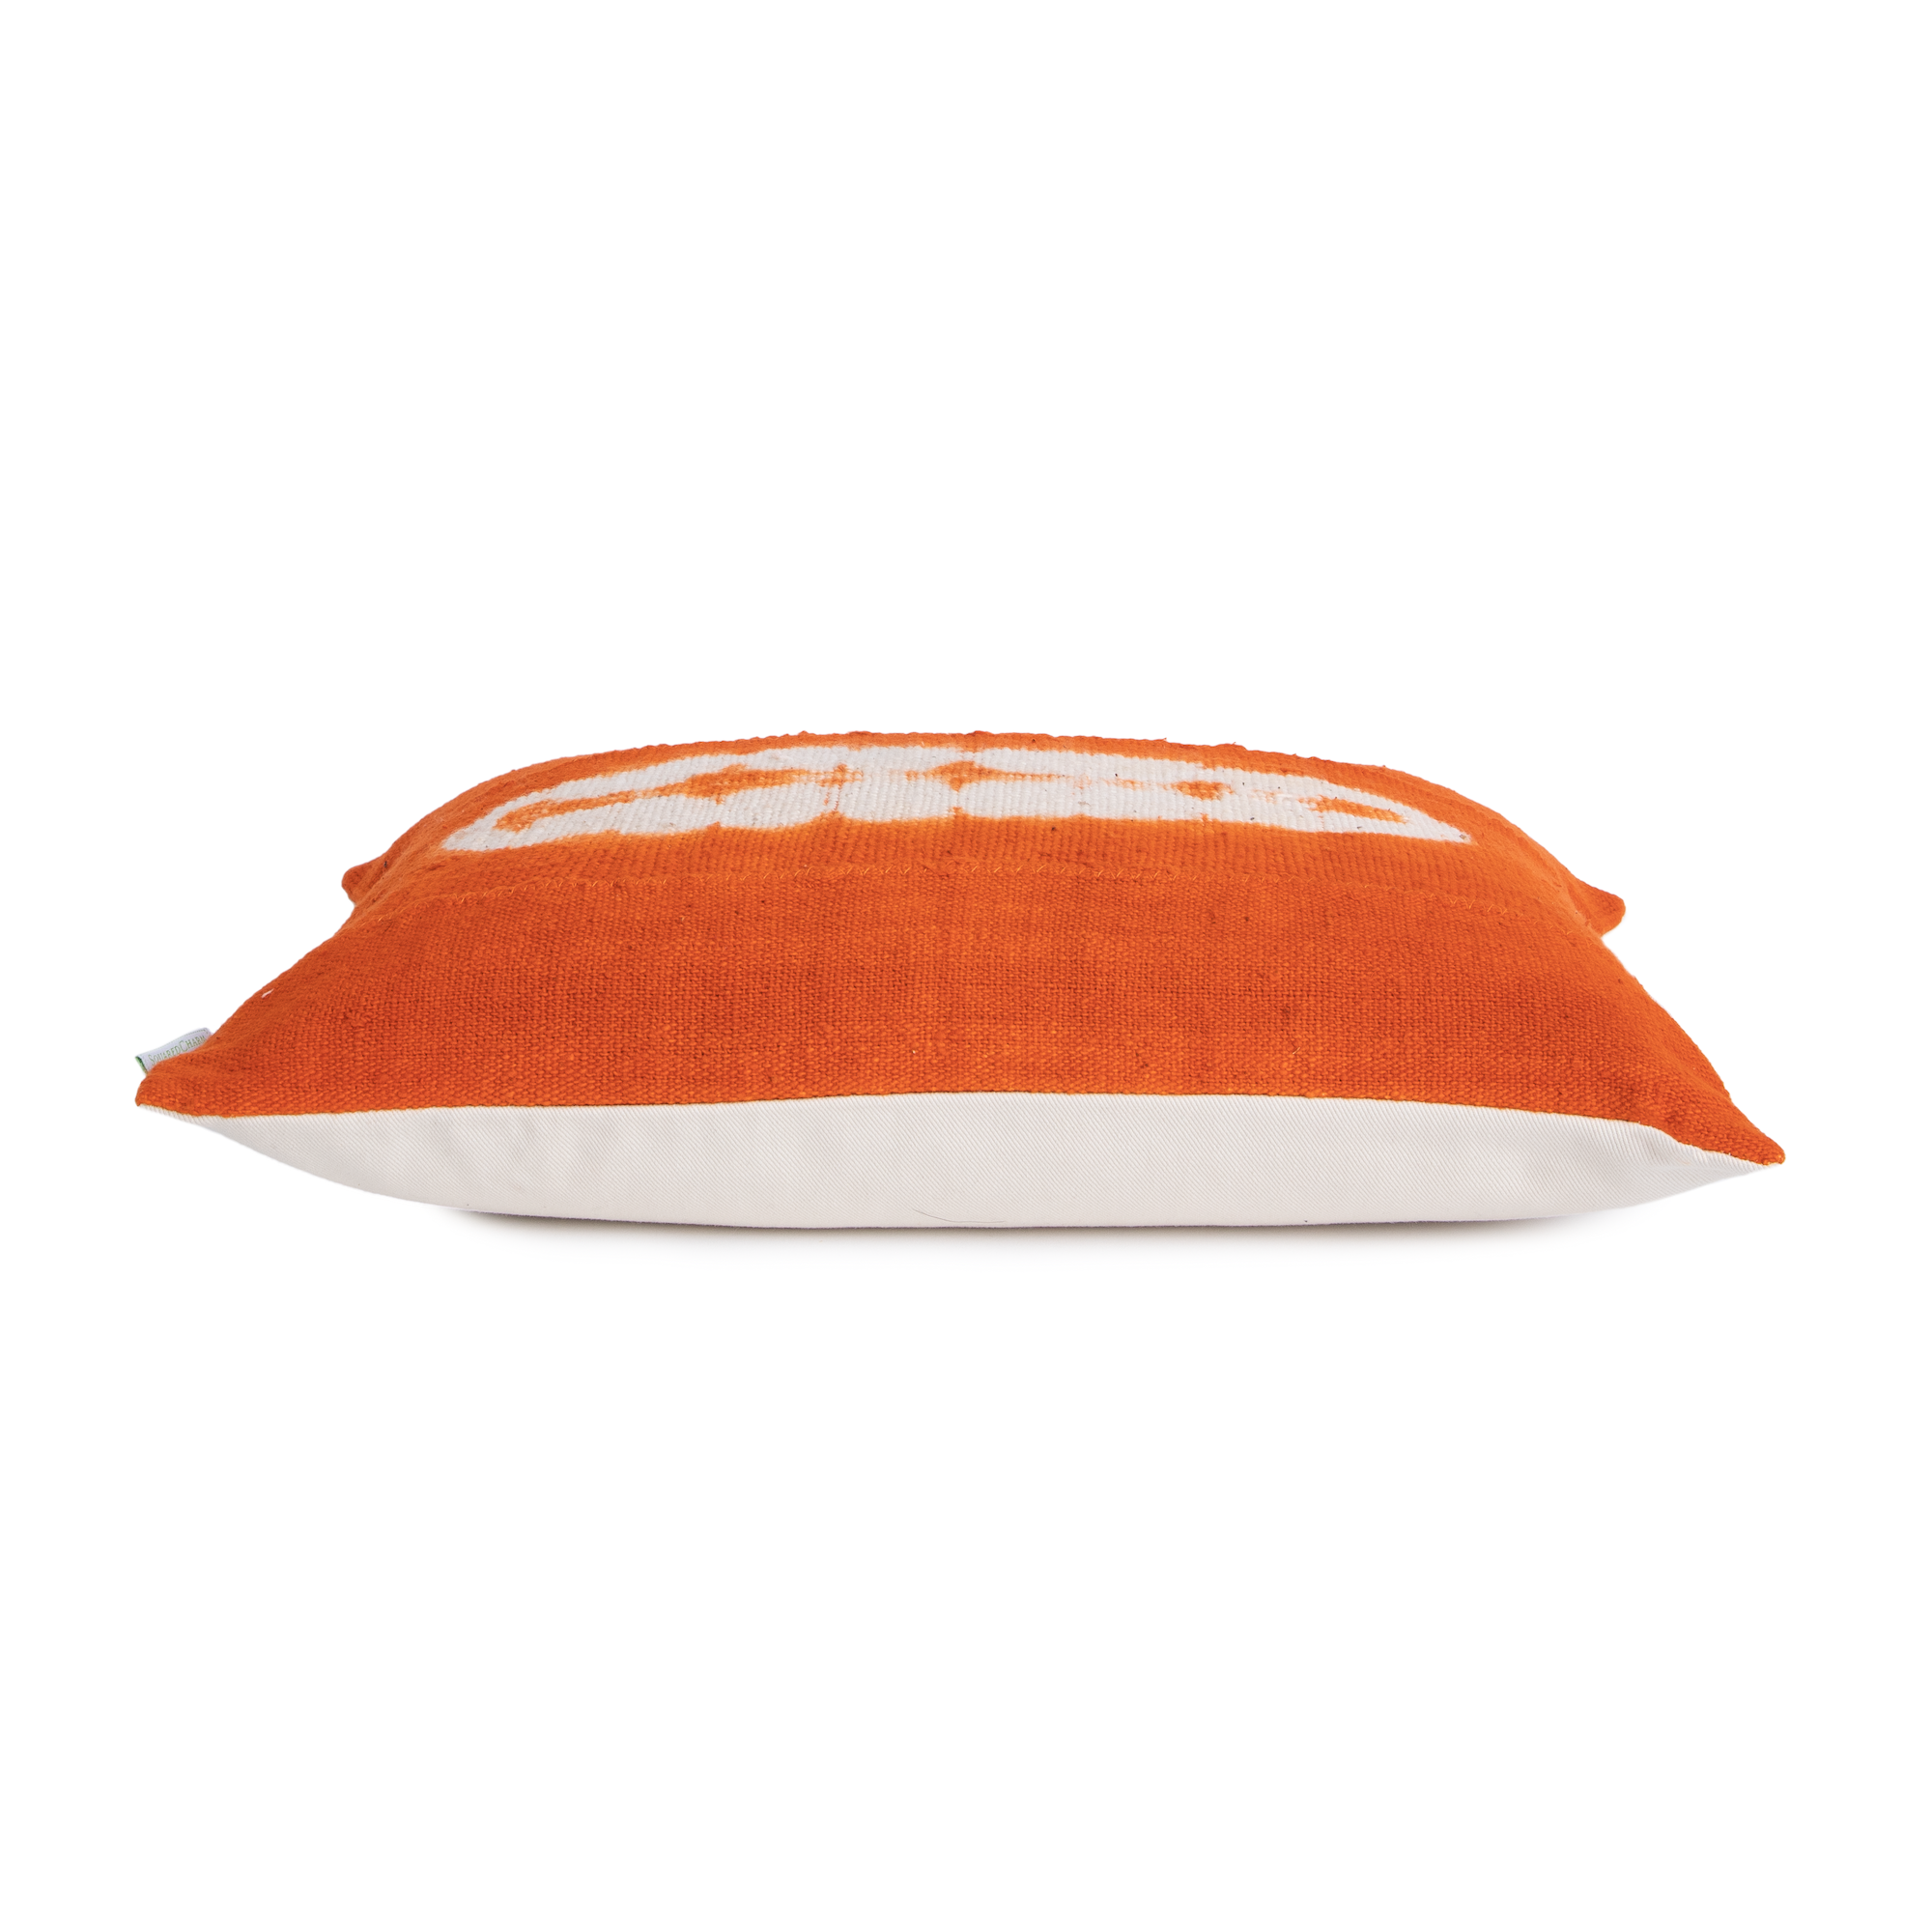 Riley | Orange Oval | Mud Cloth Pillow Cover |